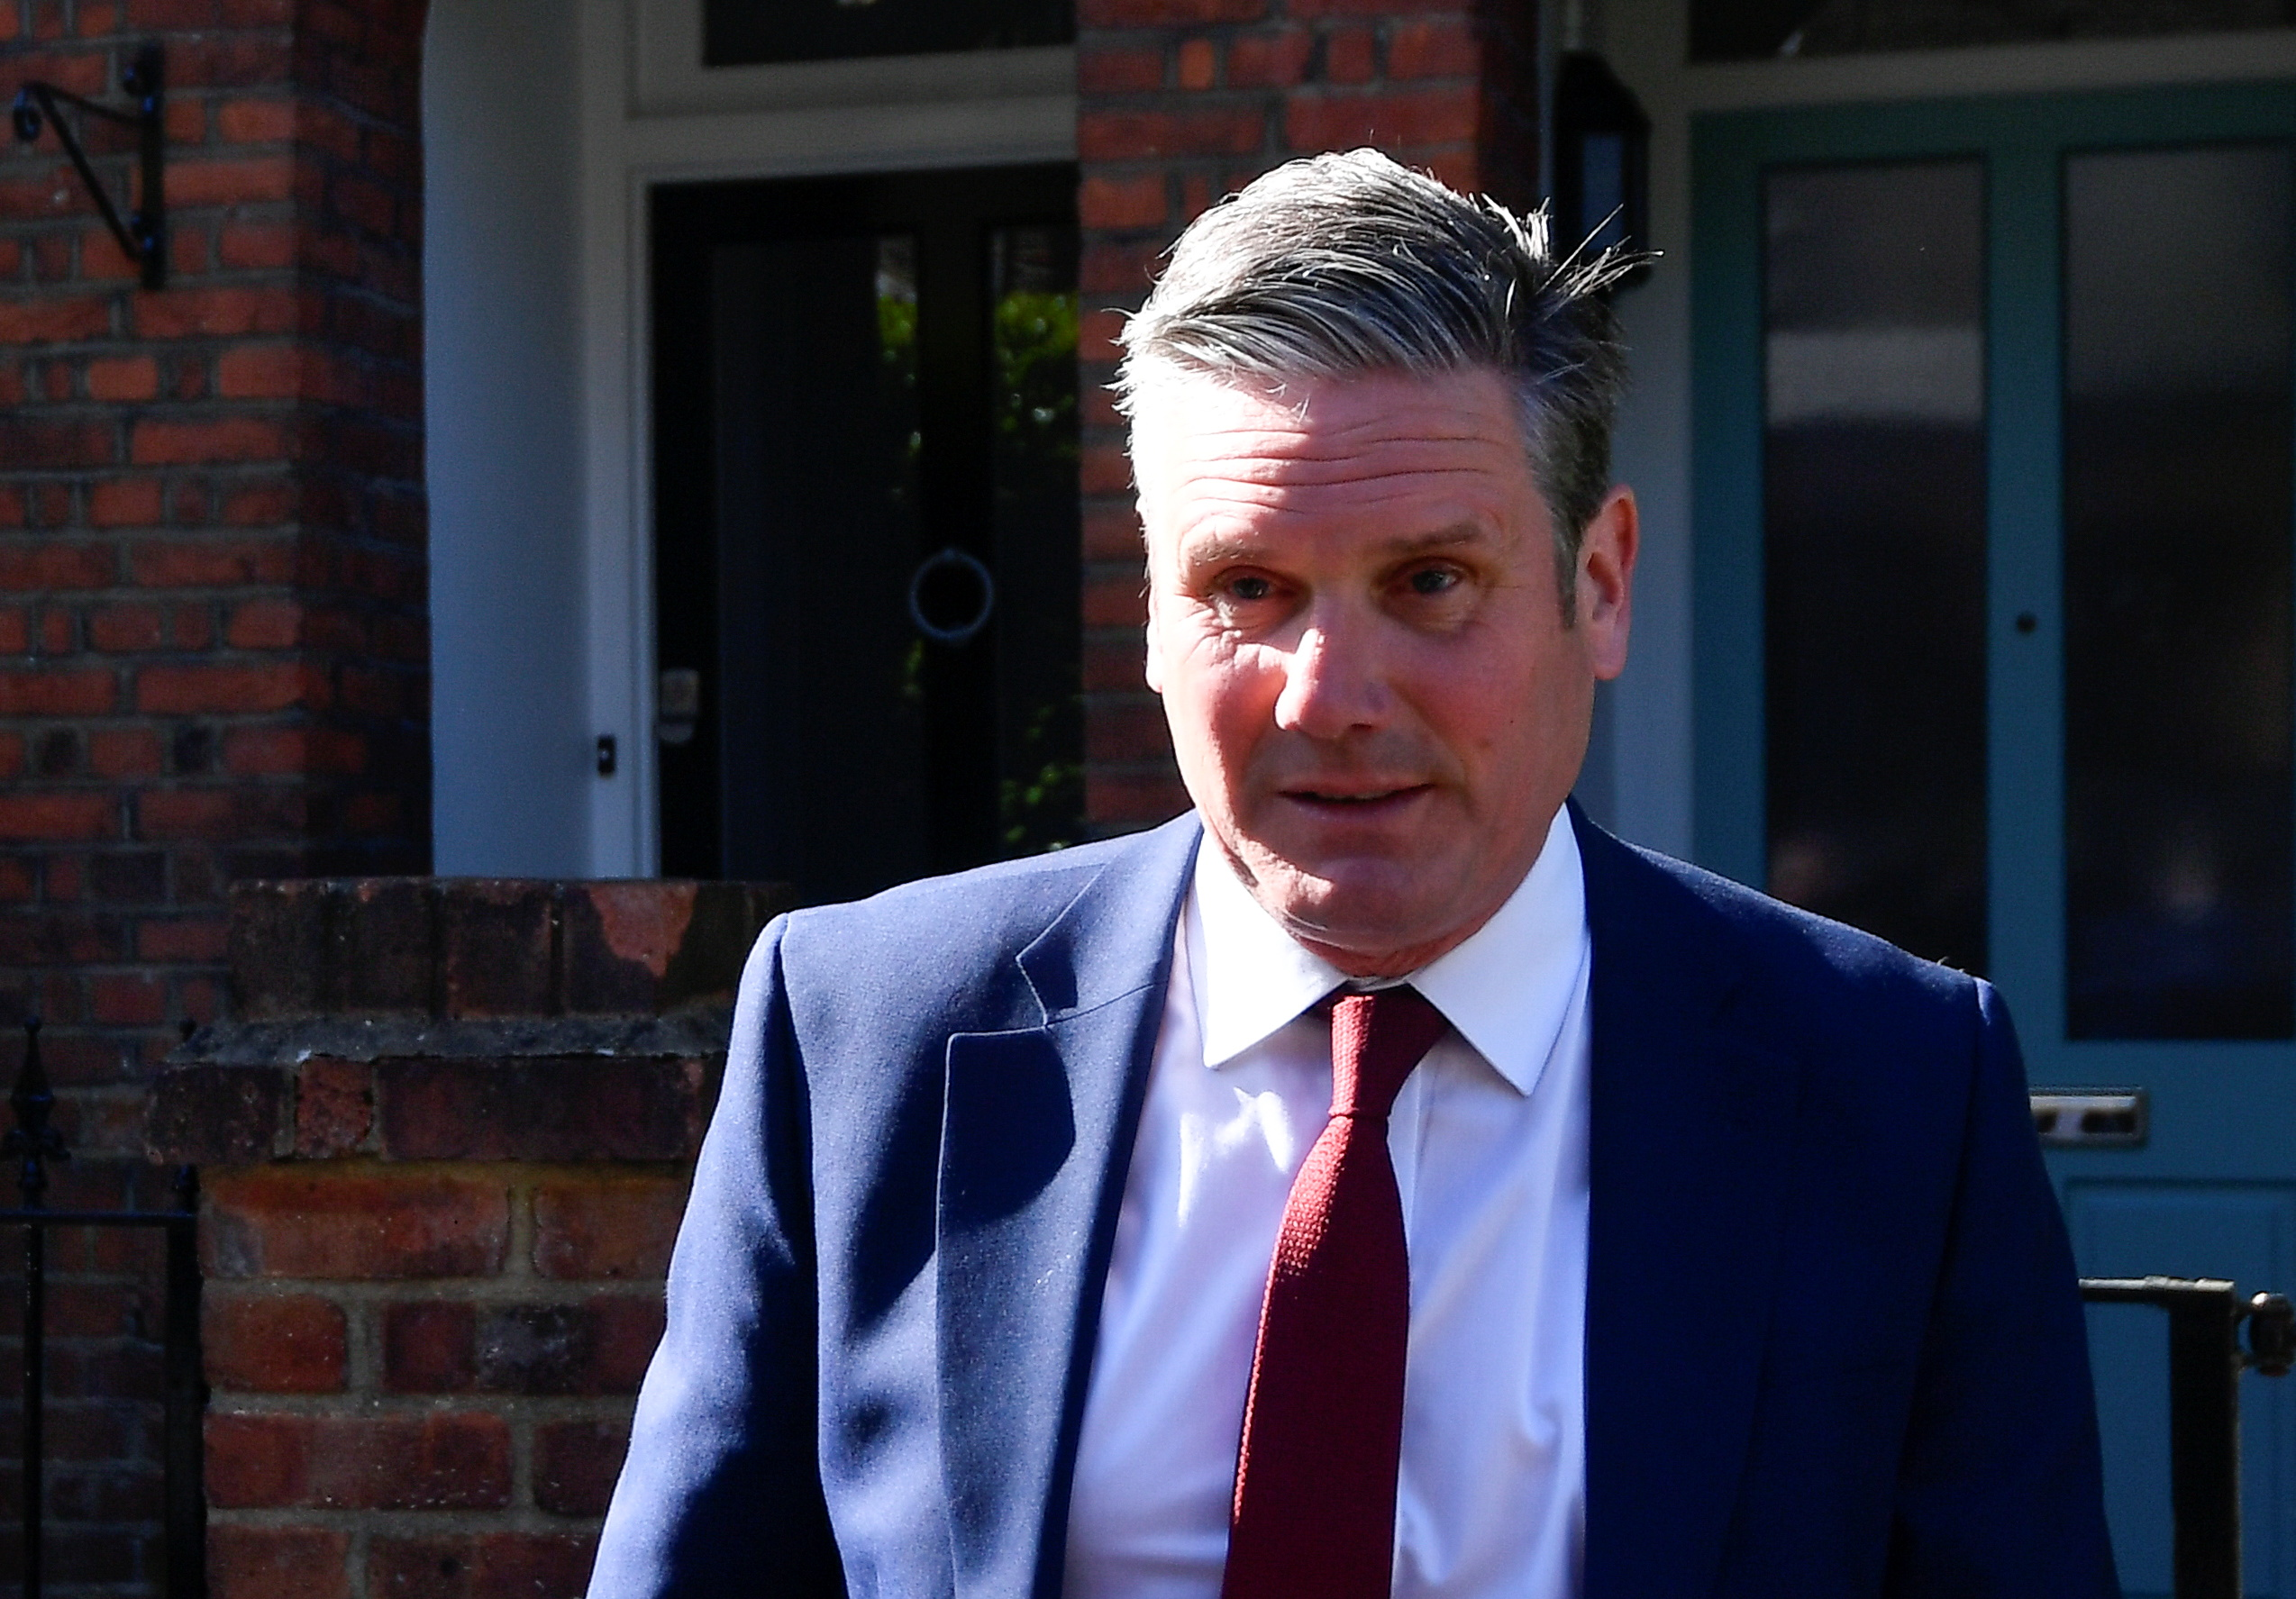 Britain's Labour Party leader Keir Starmer leaves his home after local elections in London, Britain May 7, 2021. REUTERS/Toby Melville